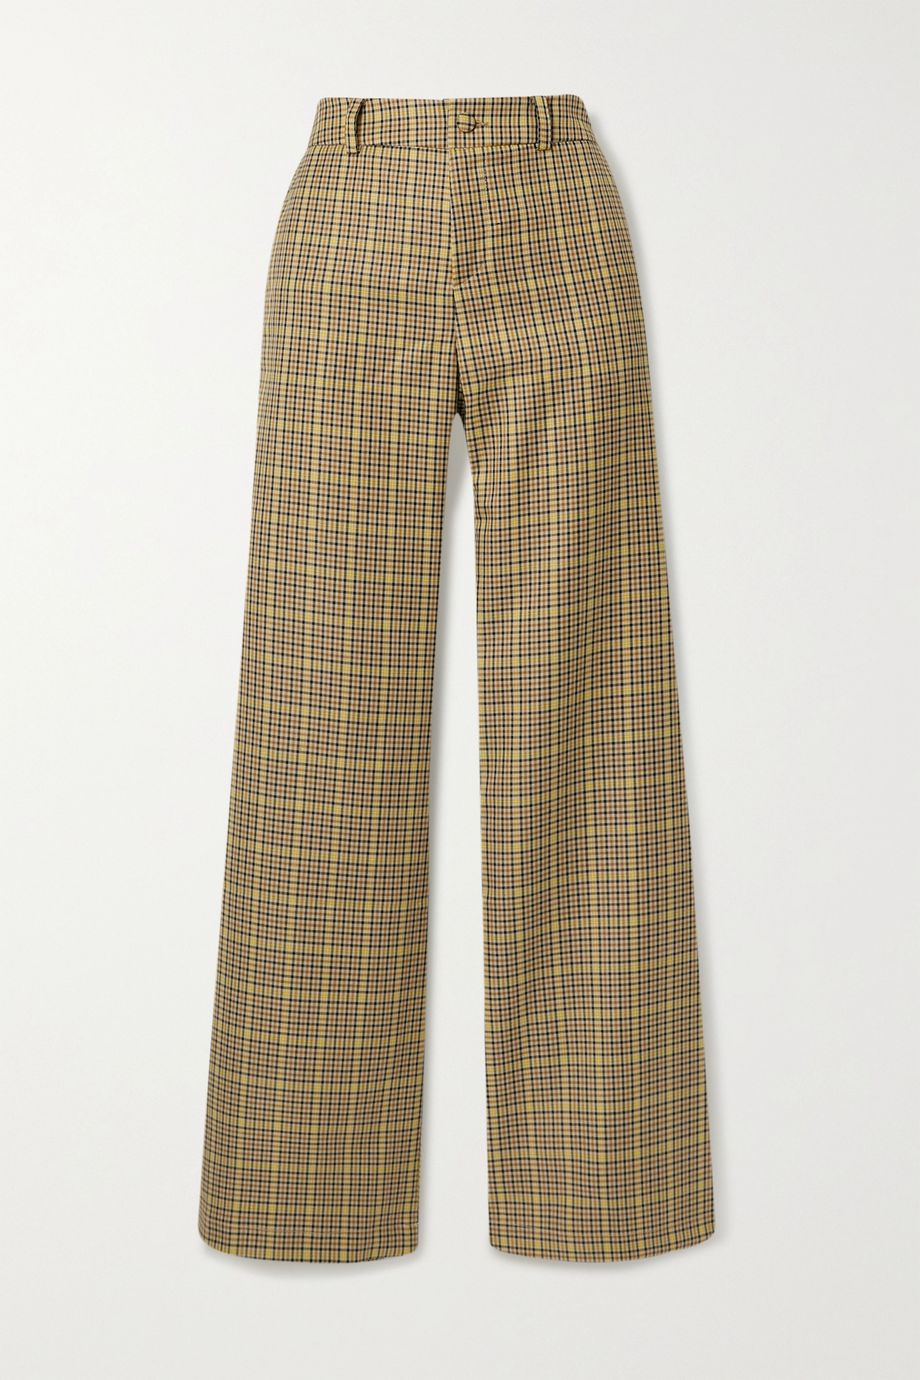 AVAVAV Checked woven straight-leg pants